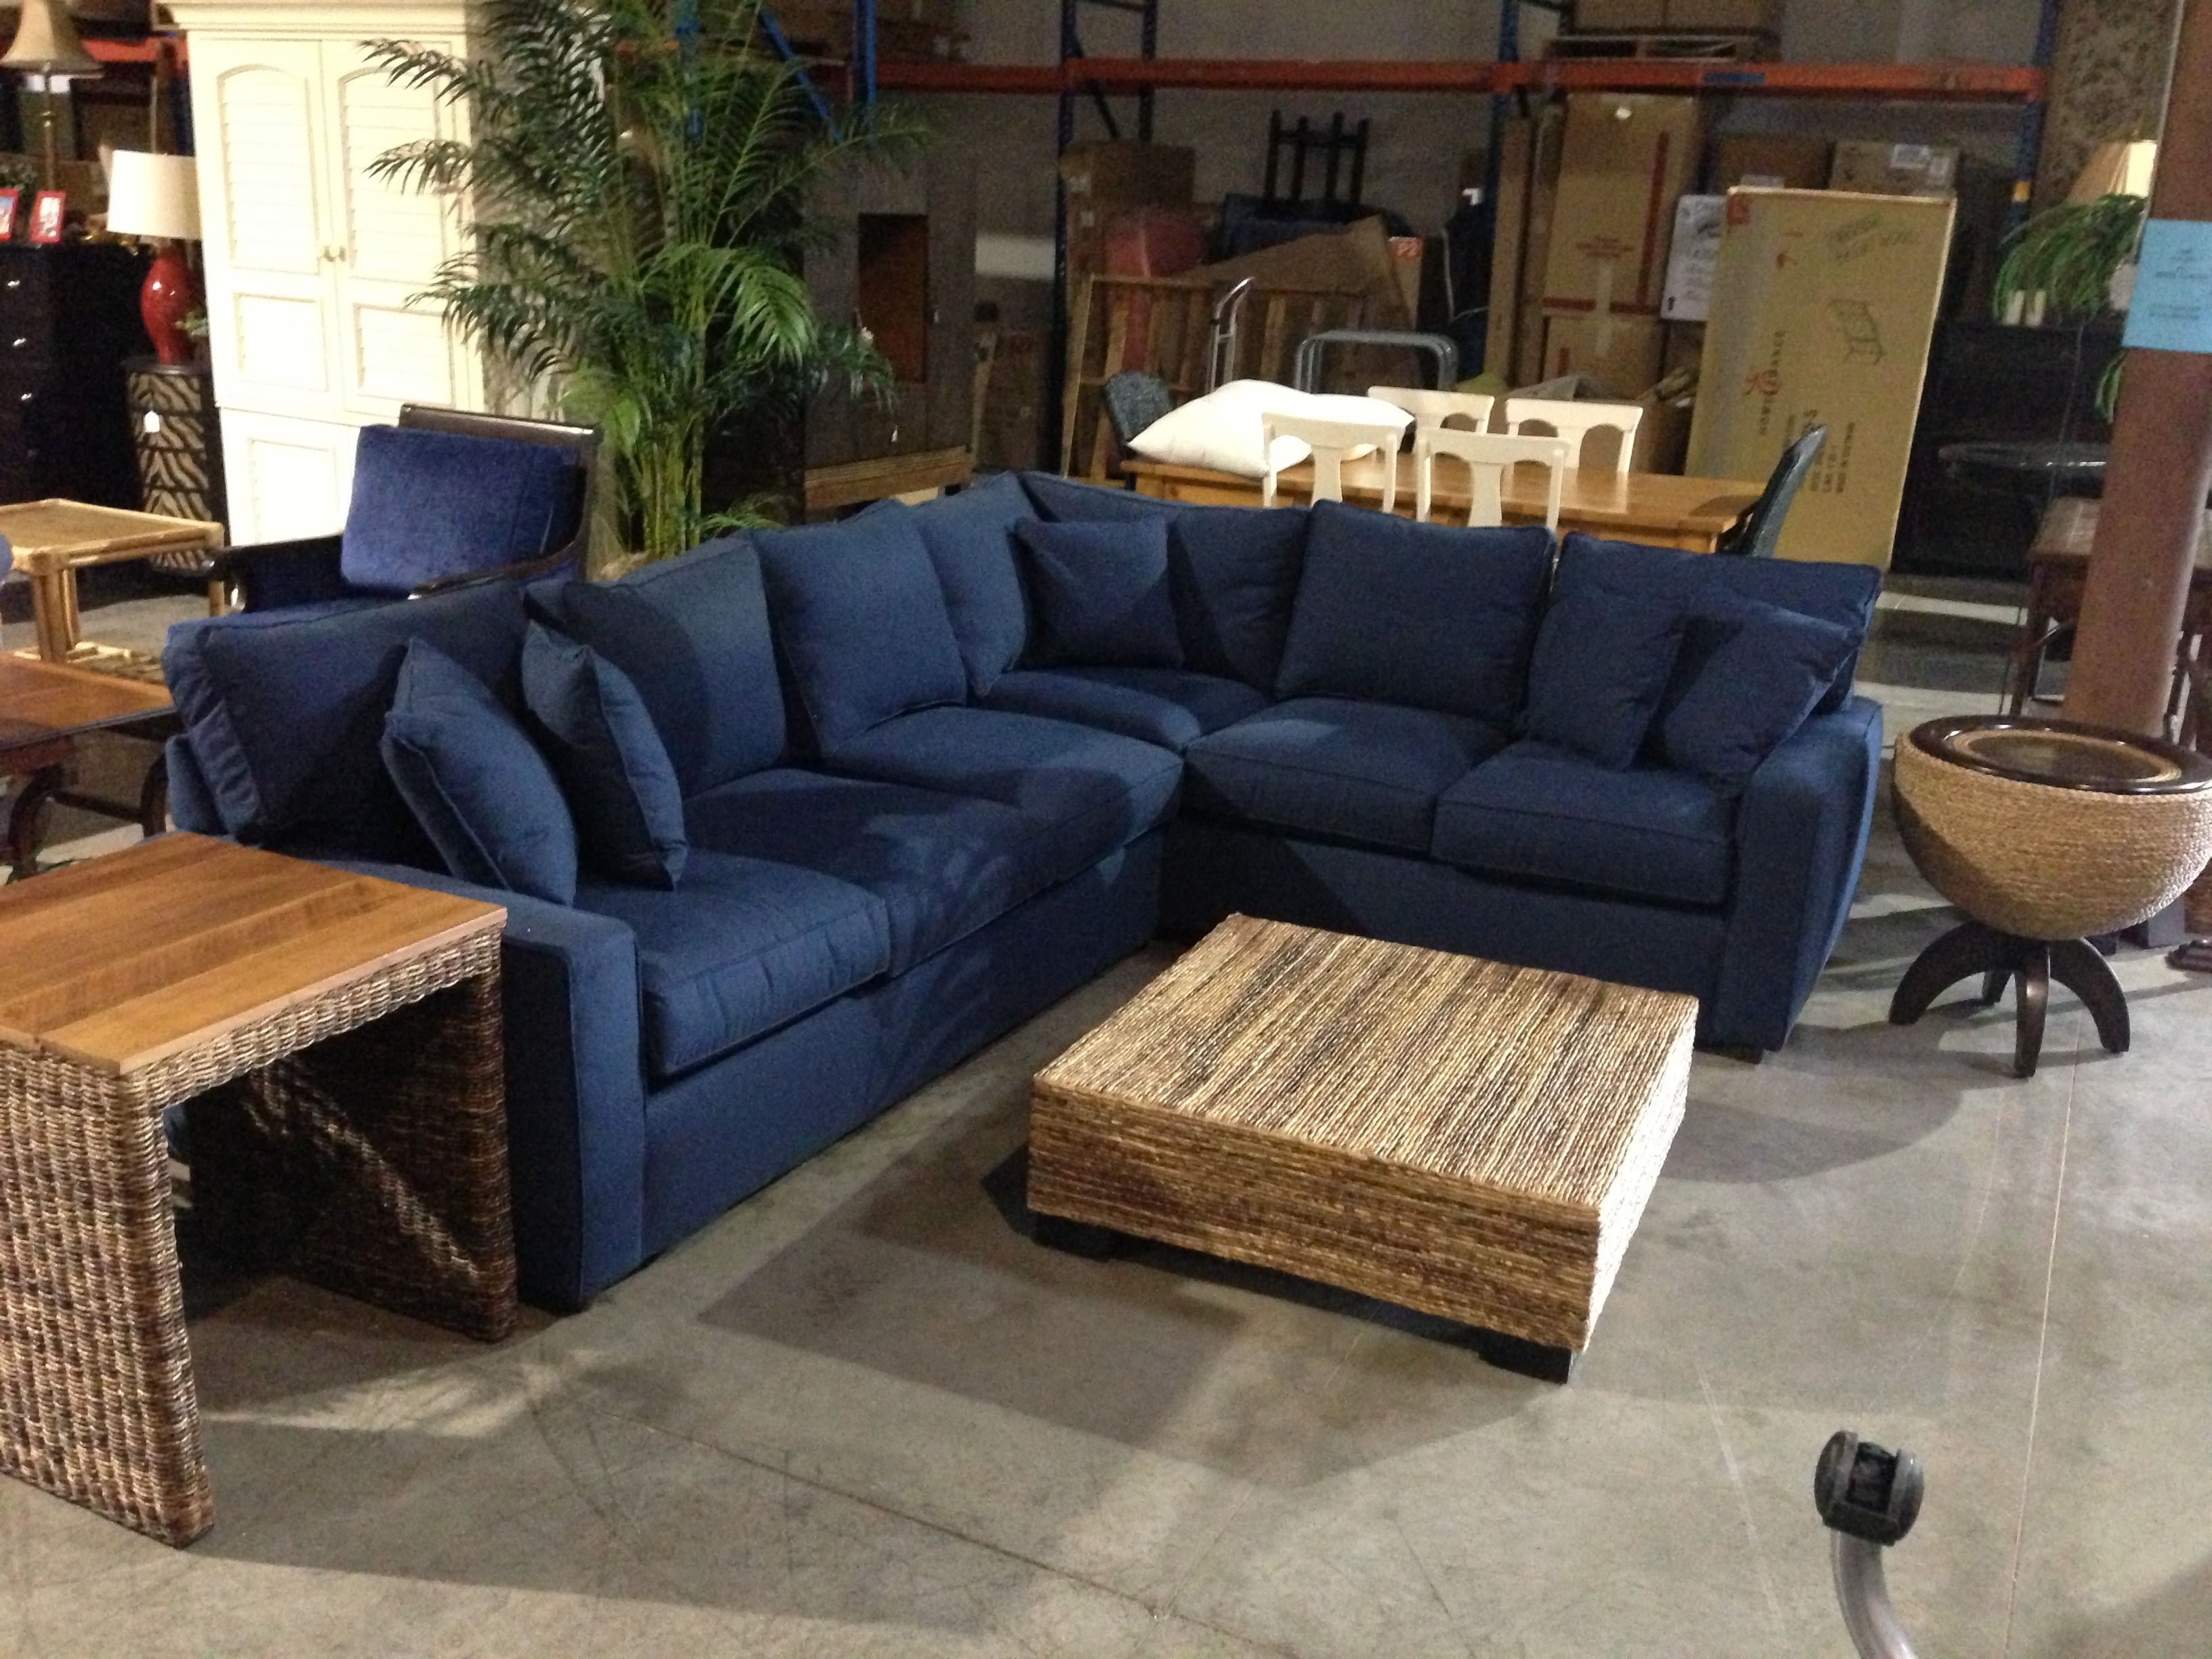 20 Inspirations Of Navy Blue Sectional Sofa throughout Blue Sectional Sofas (Image 1 of 15)